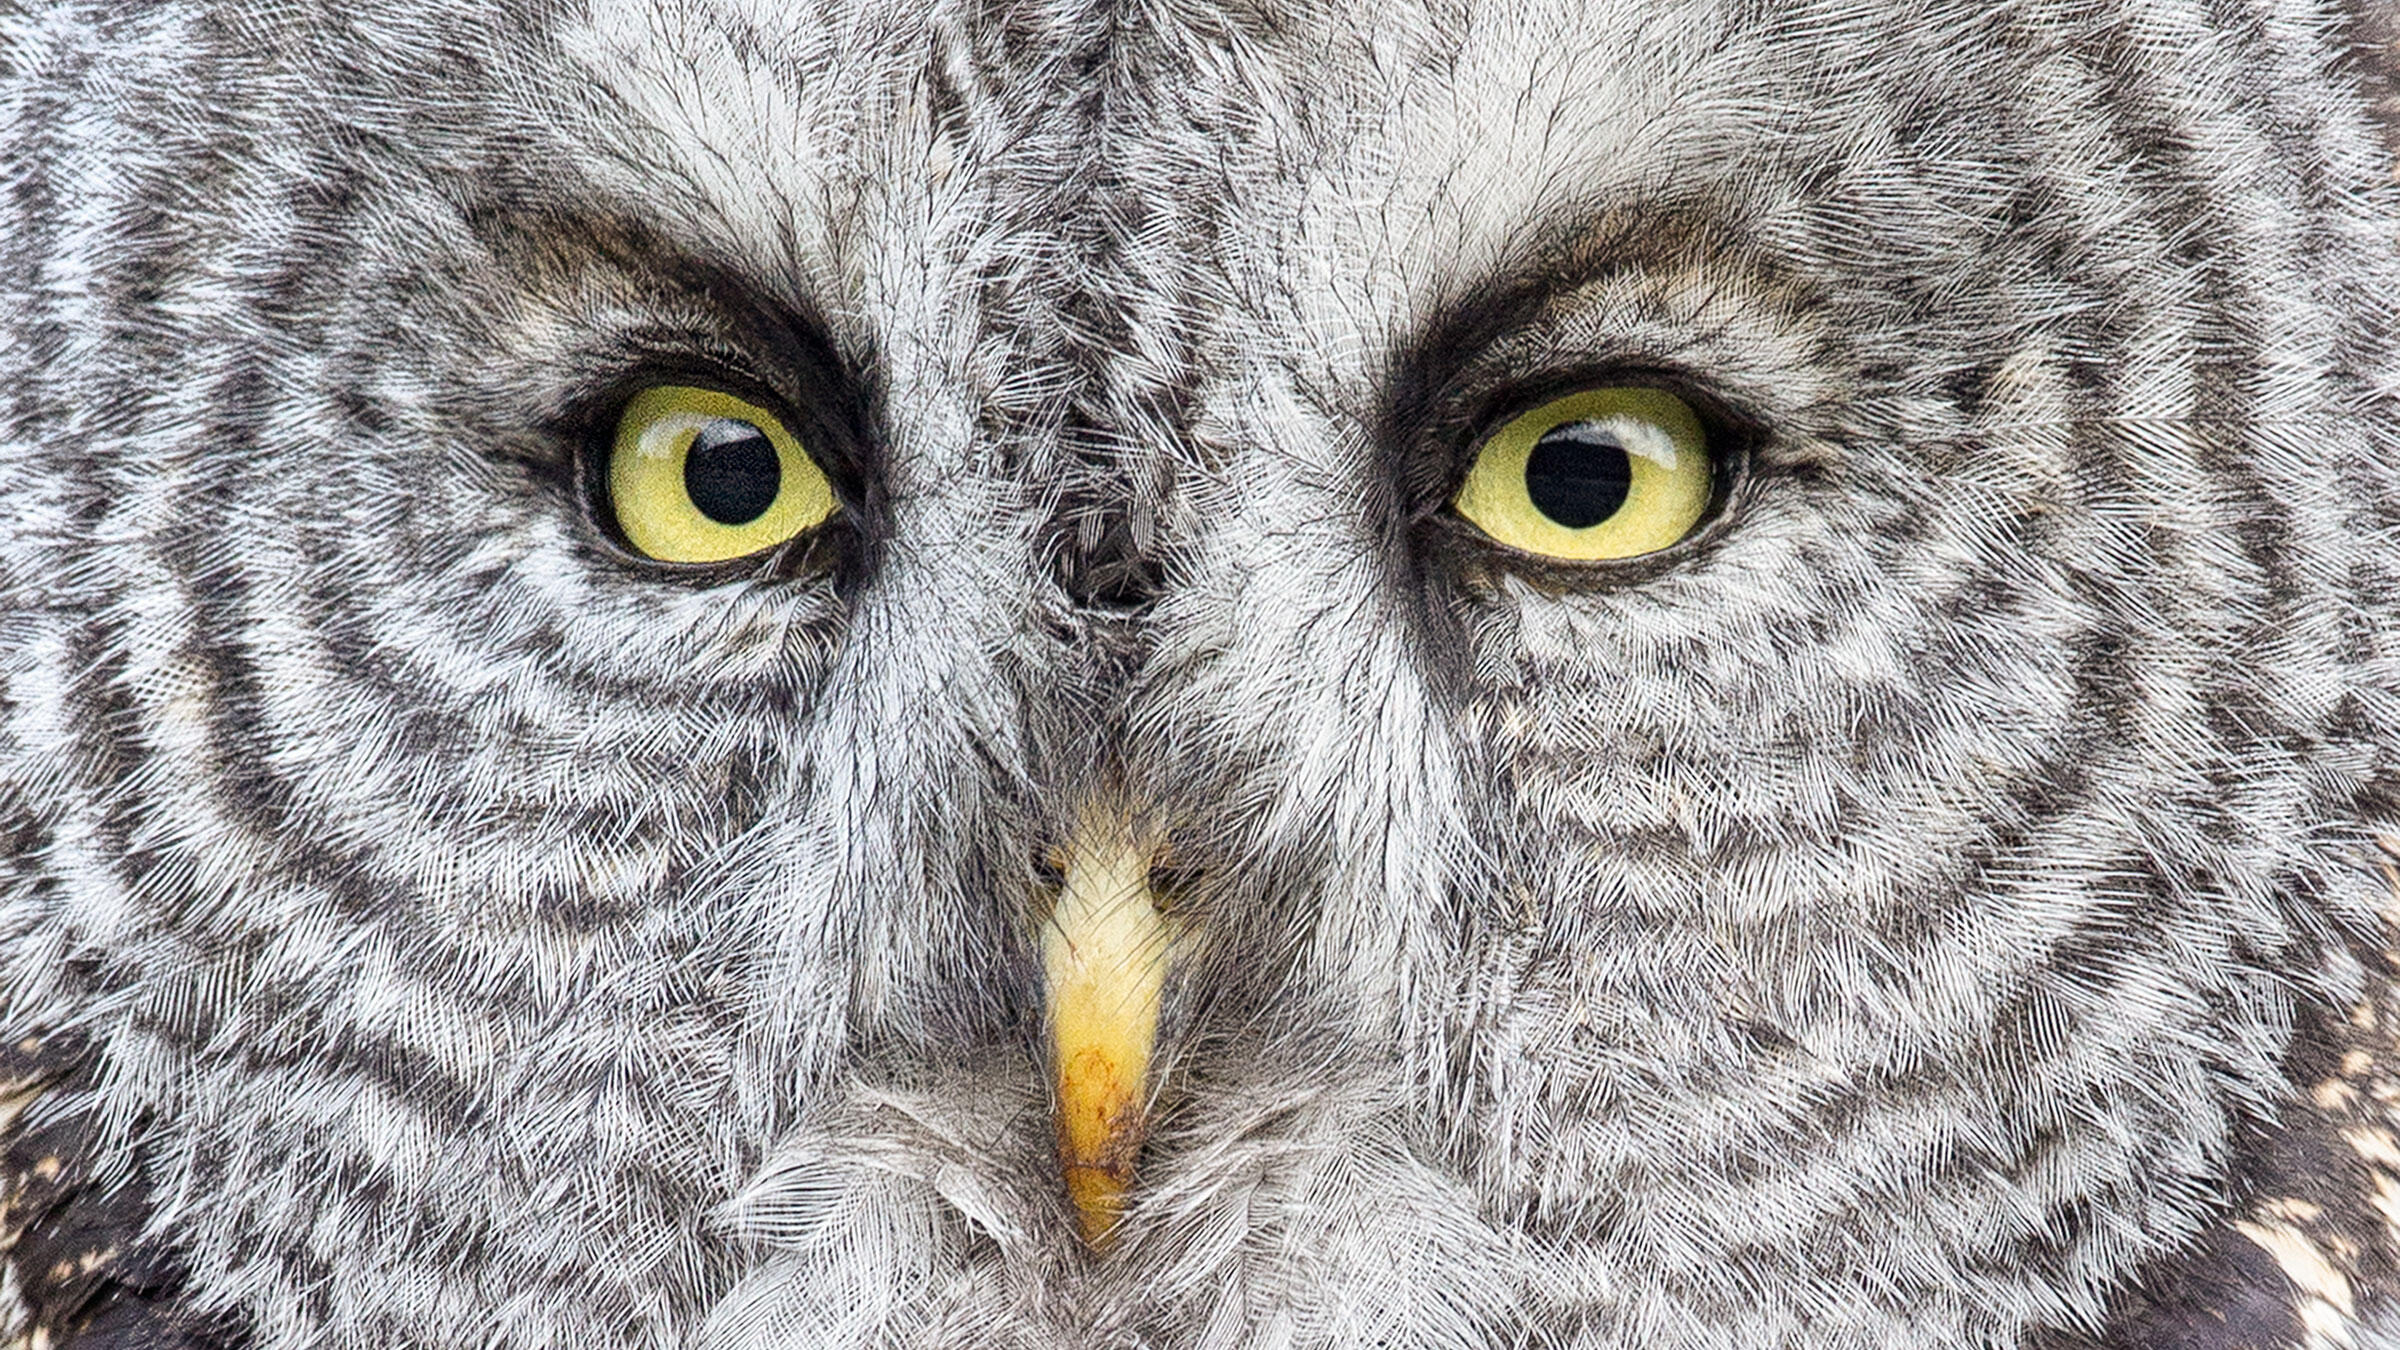 Night Owls May Face Special Challenges >> After 100 Years Scientists Are Finally Starting To Understand The